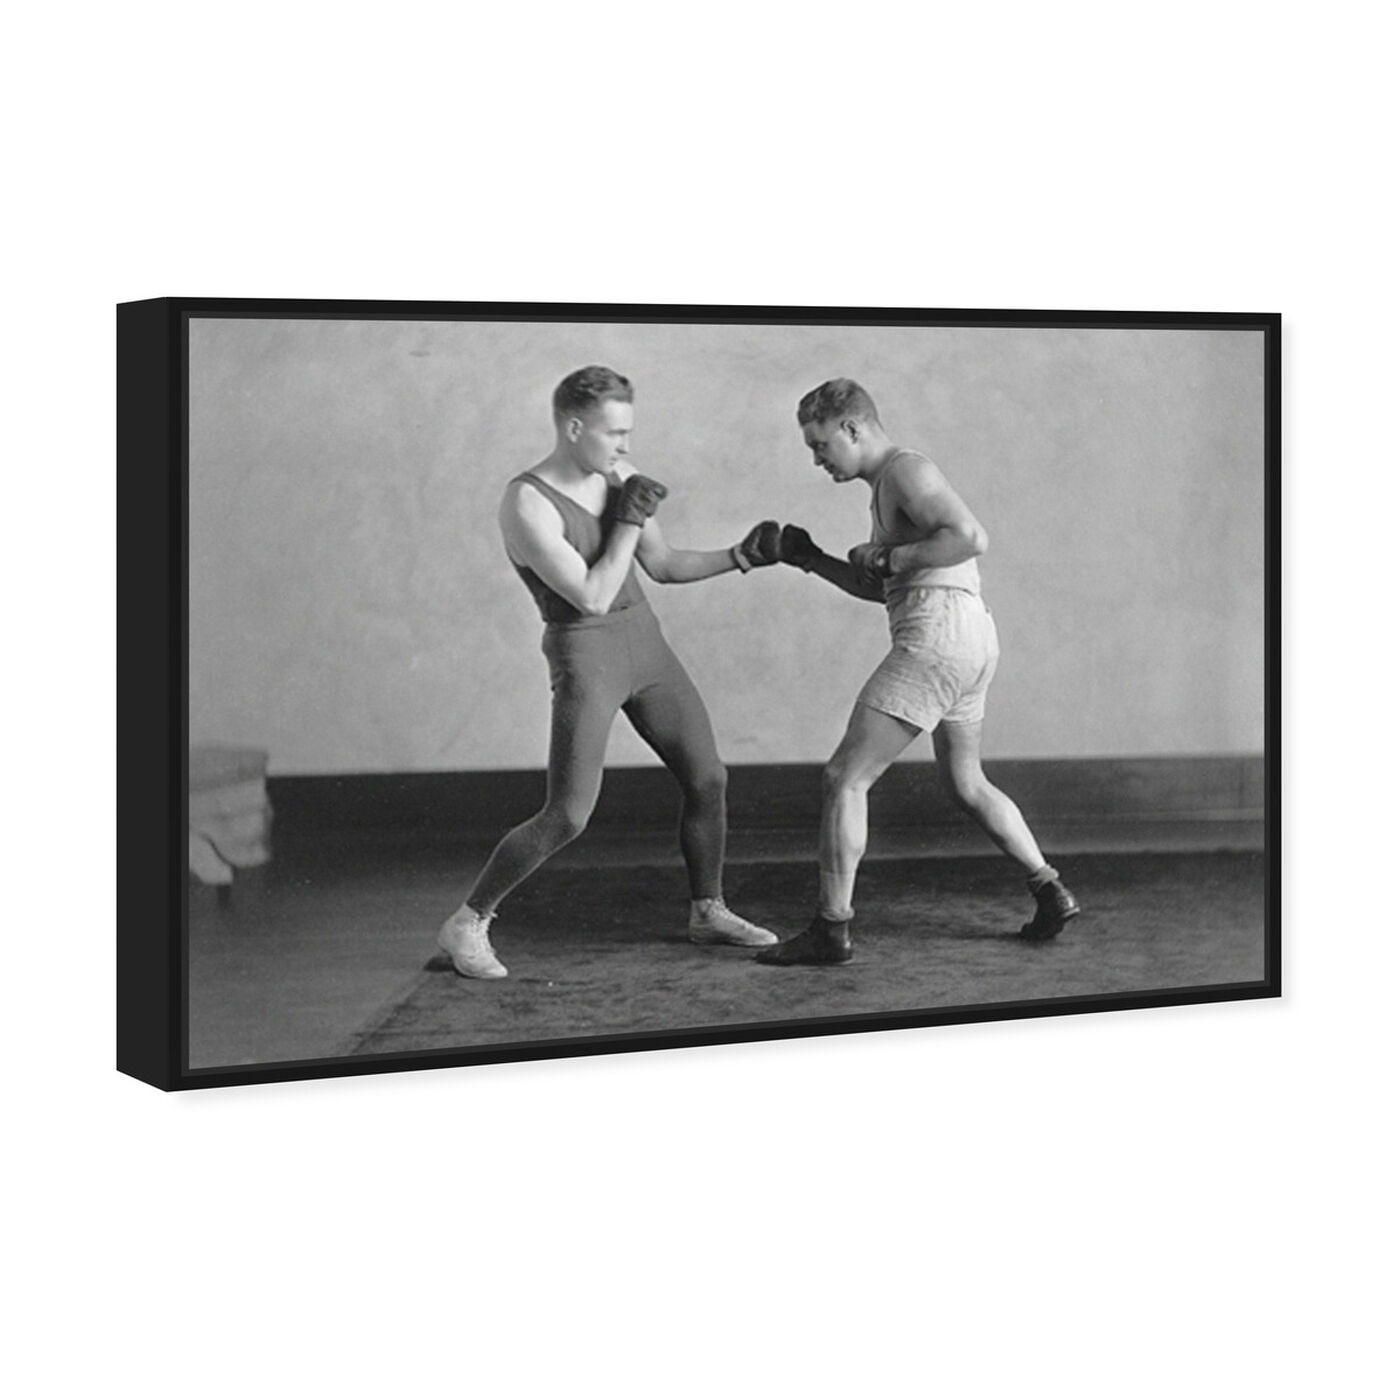 Angled view of McGill Boxing - The Art Cabinet featuring sports and teams and boxing art.